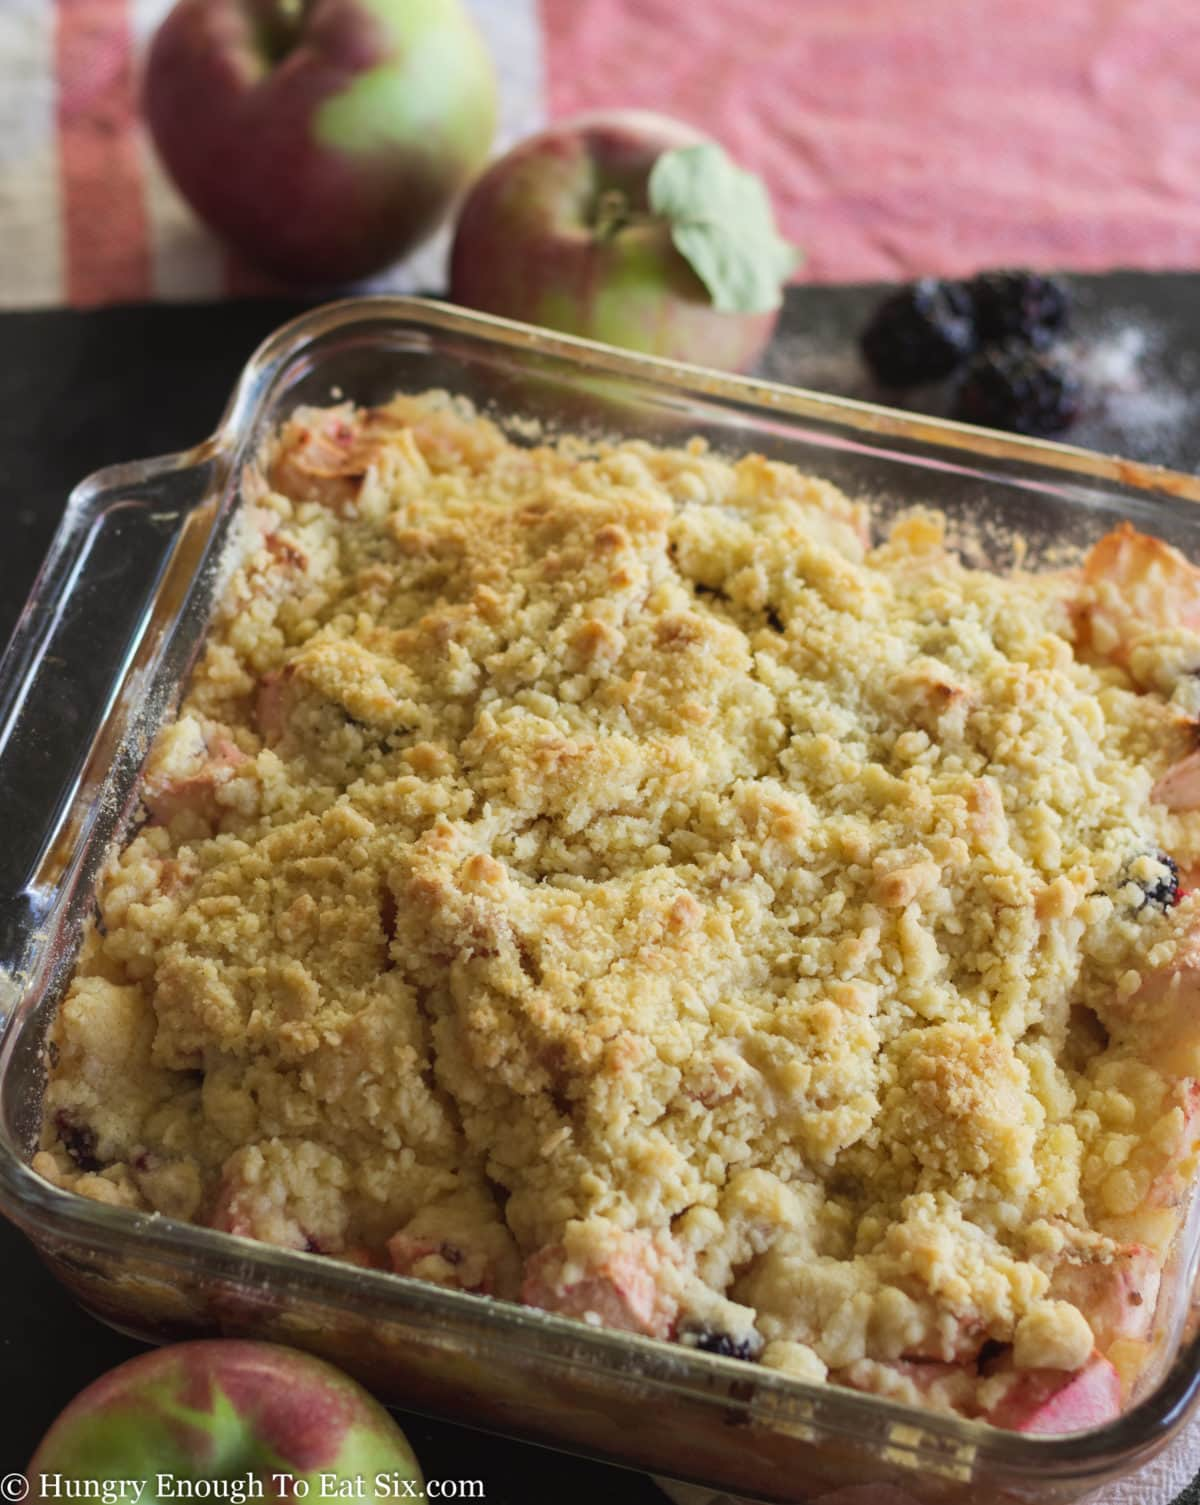 Crumble topped fruit in dish